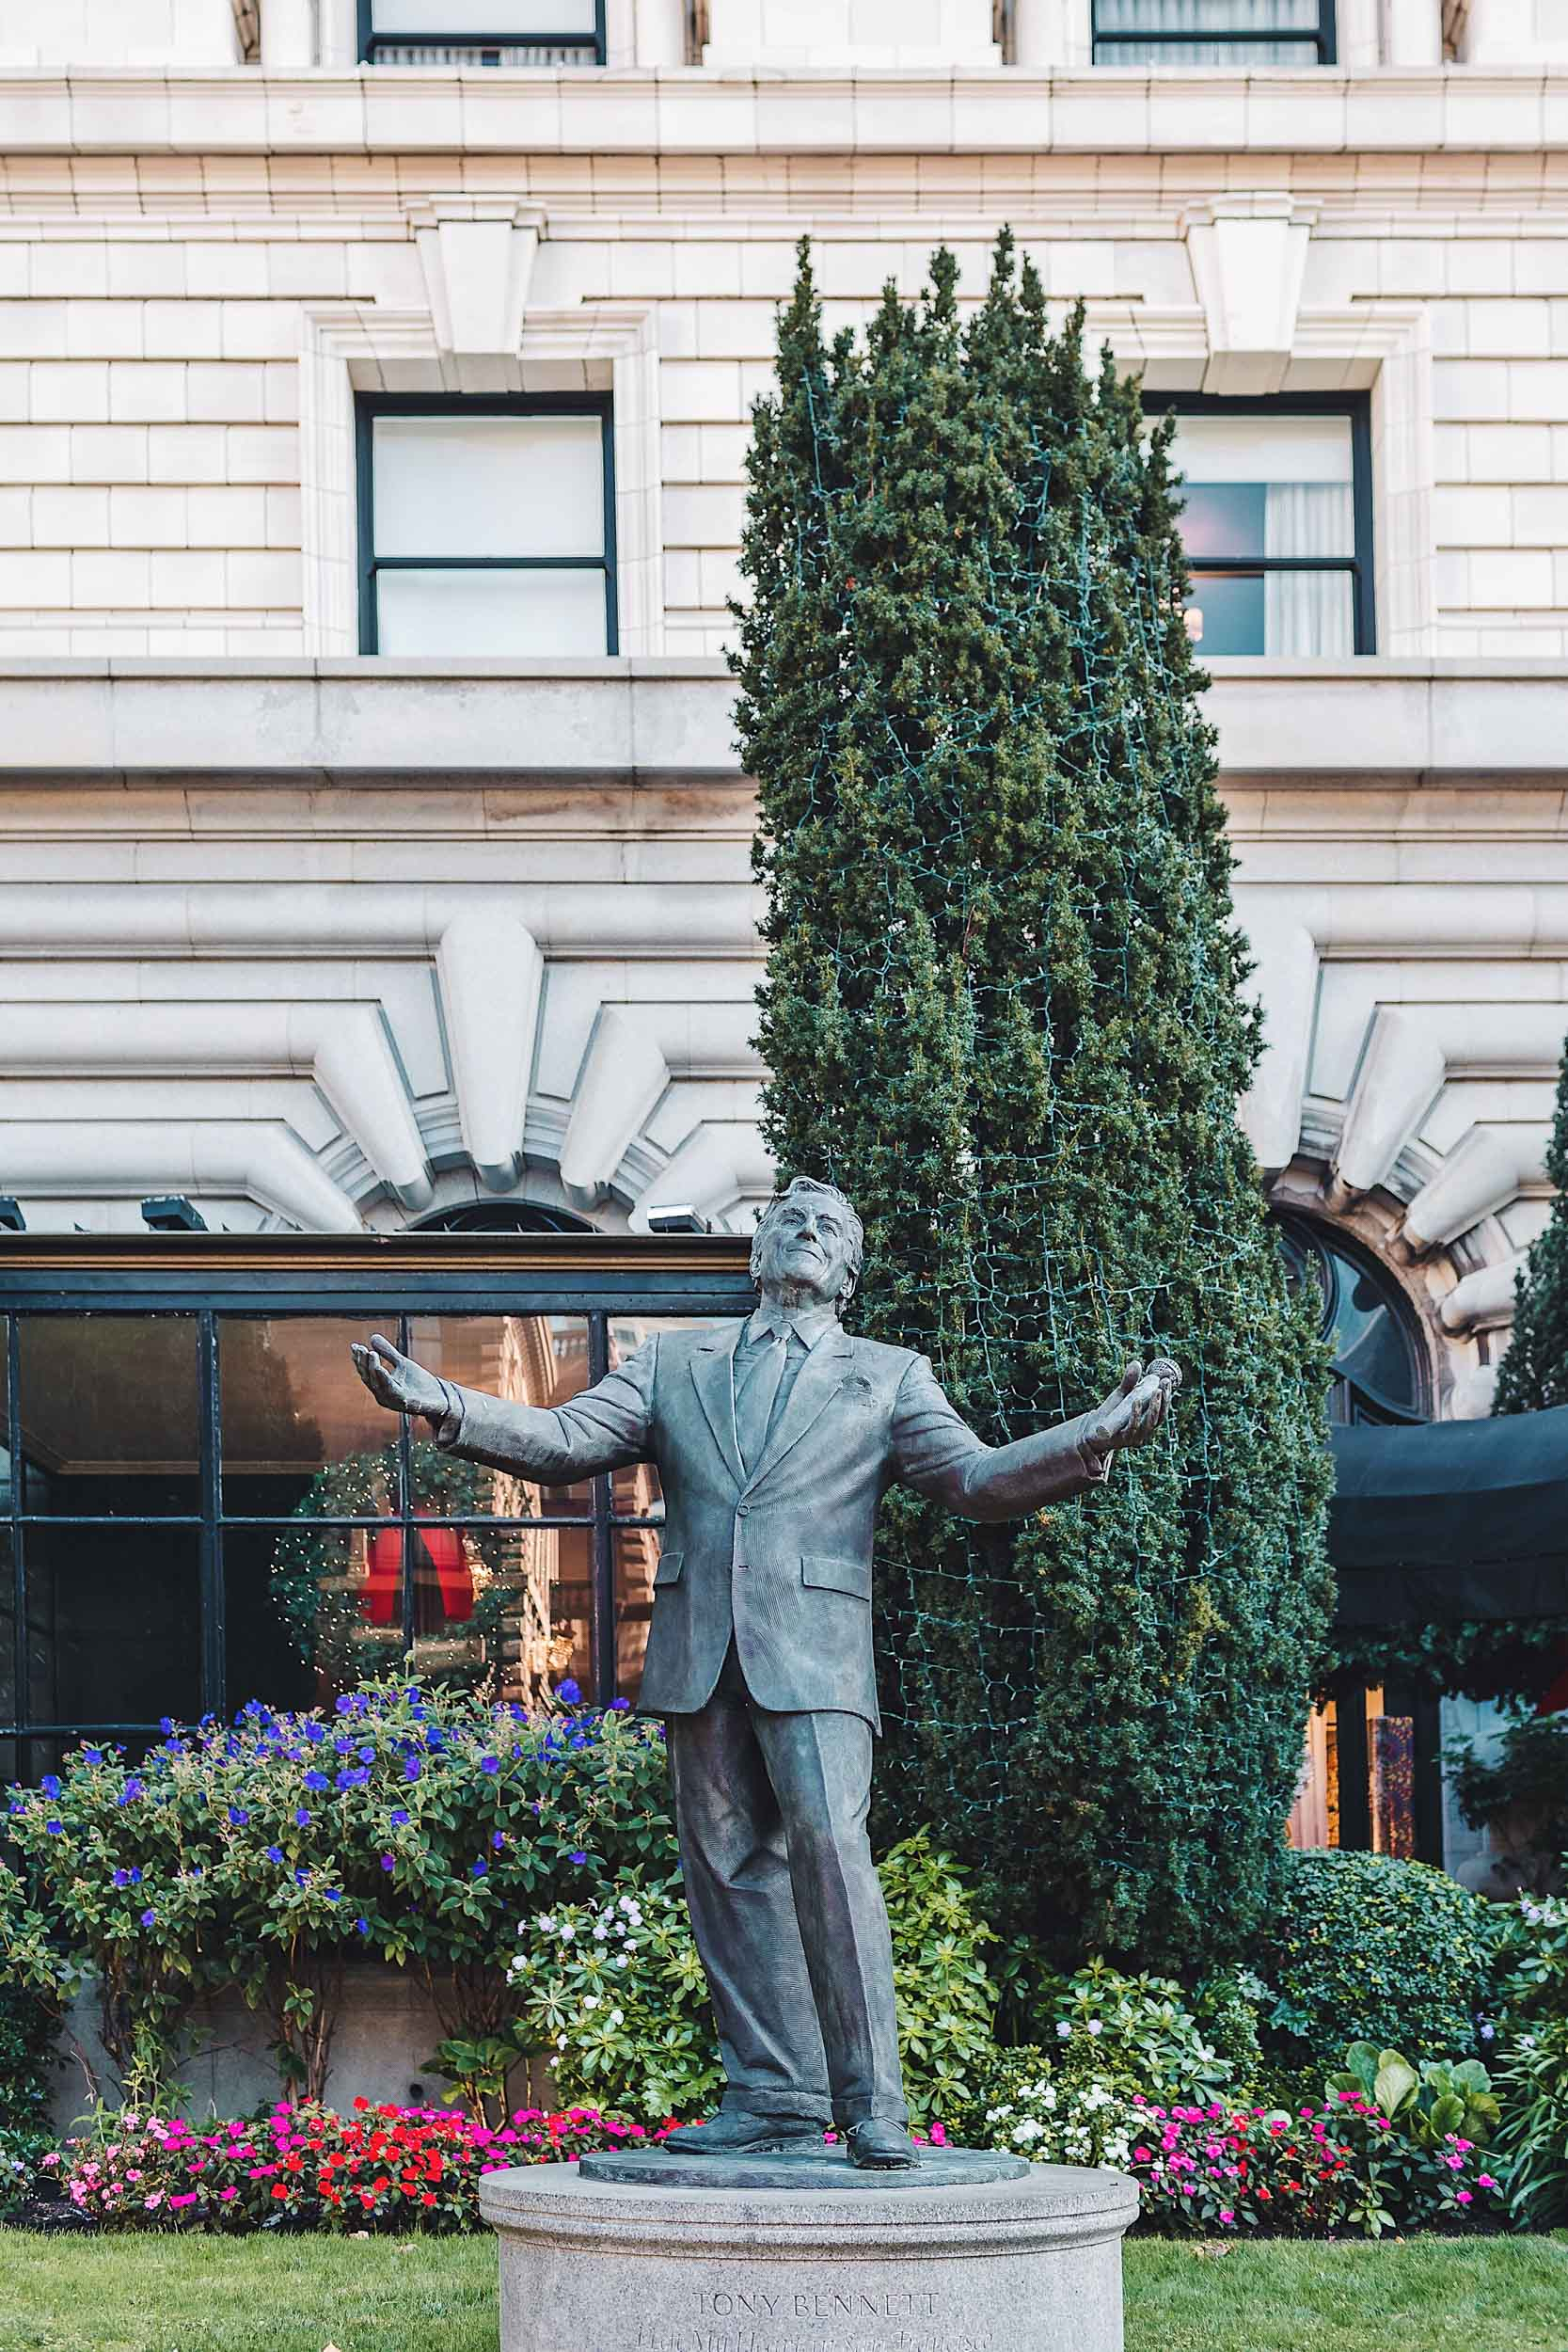 Tony Bennet left his heart in San Francisco (at The Fairmont!)